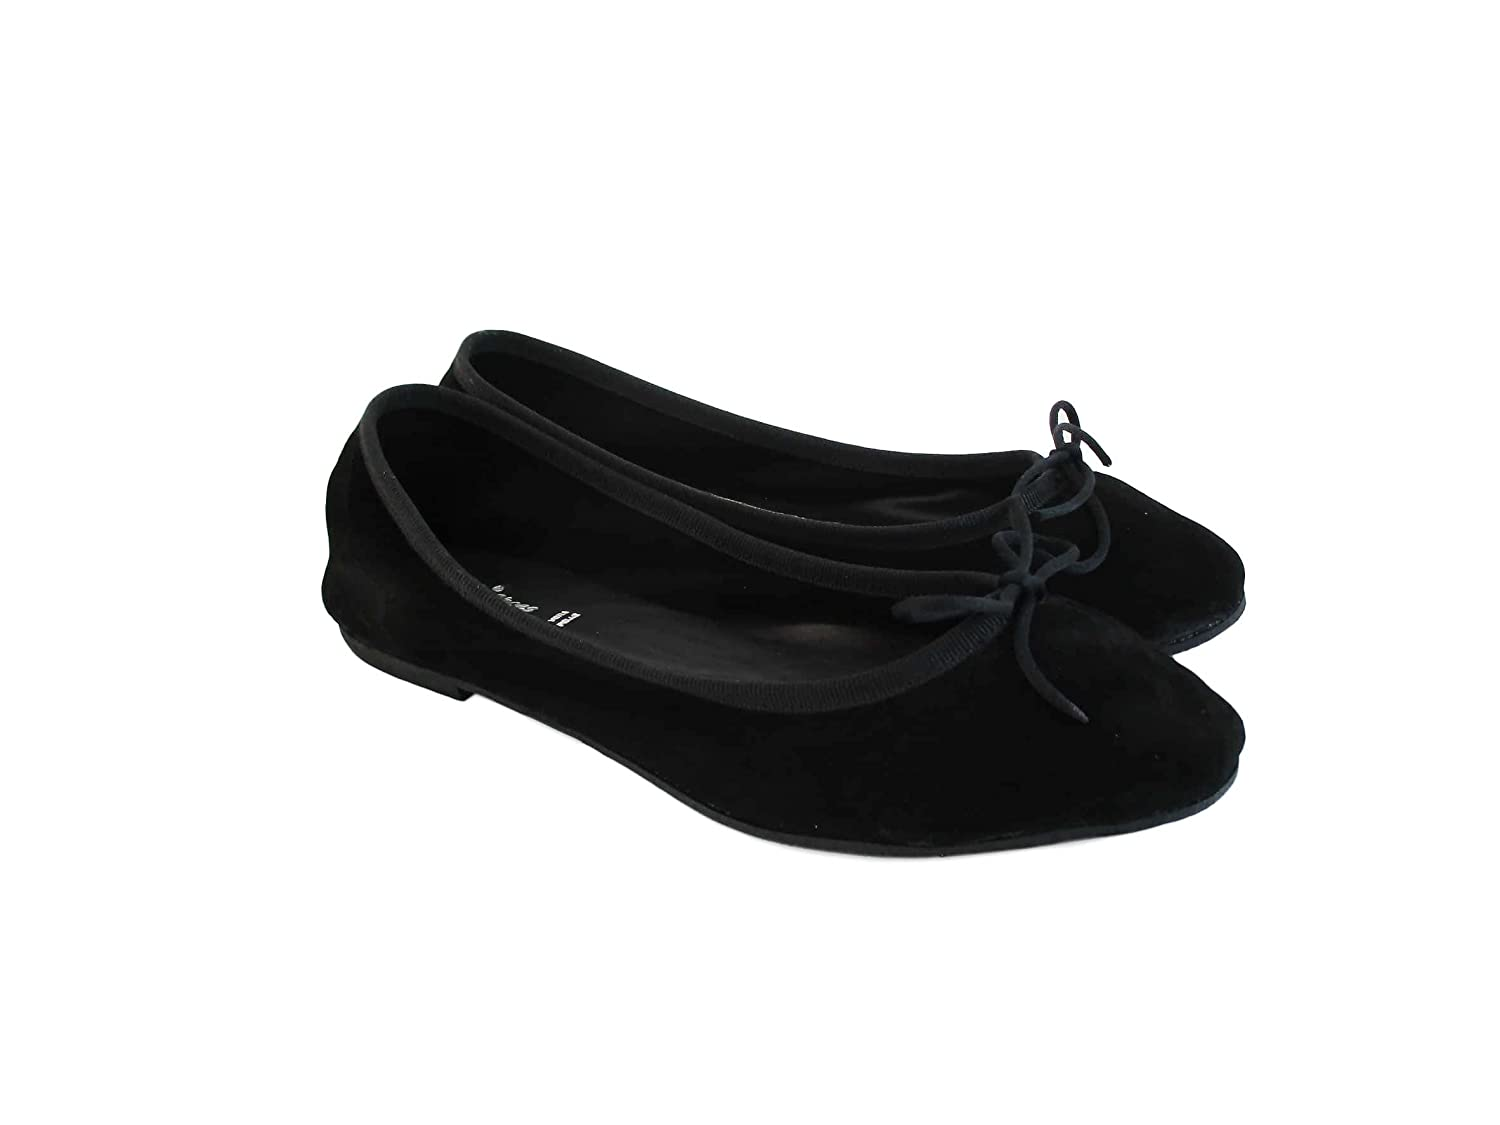 Womens Shoes Real Suede -SilferShoes Black Color Made in Italy Womens Ballet Flat